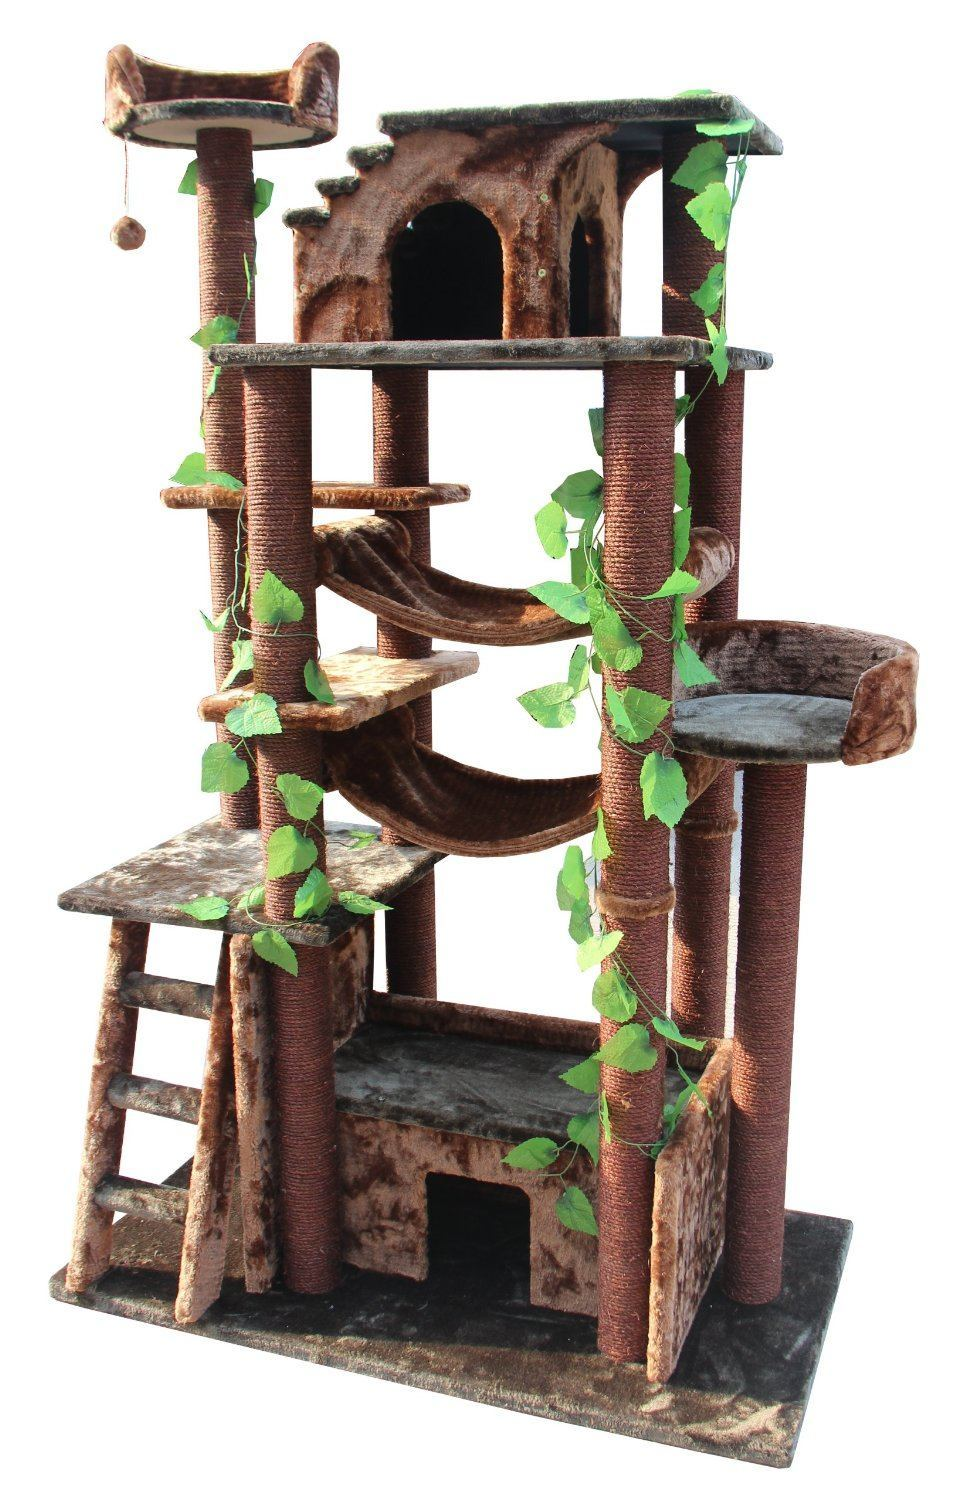 kitty mansions amazon cat tree. Black Bedroom Furniture Sets. Home Design Ideas